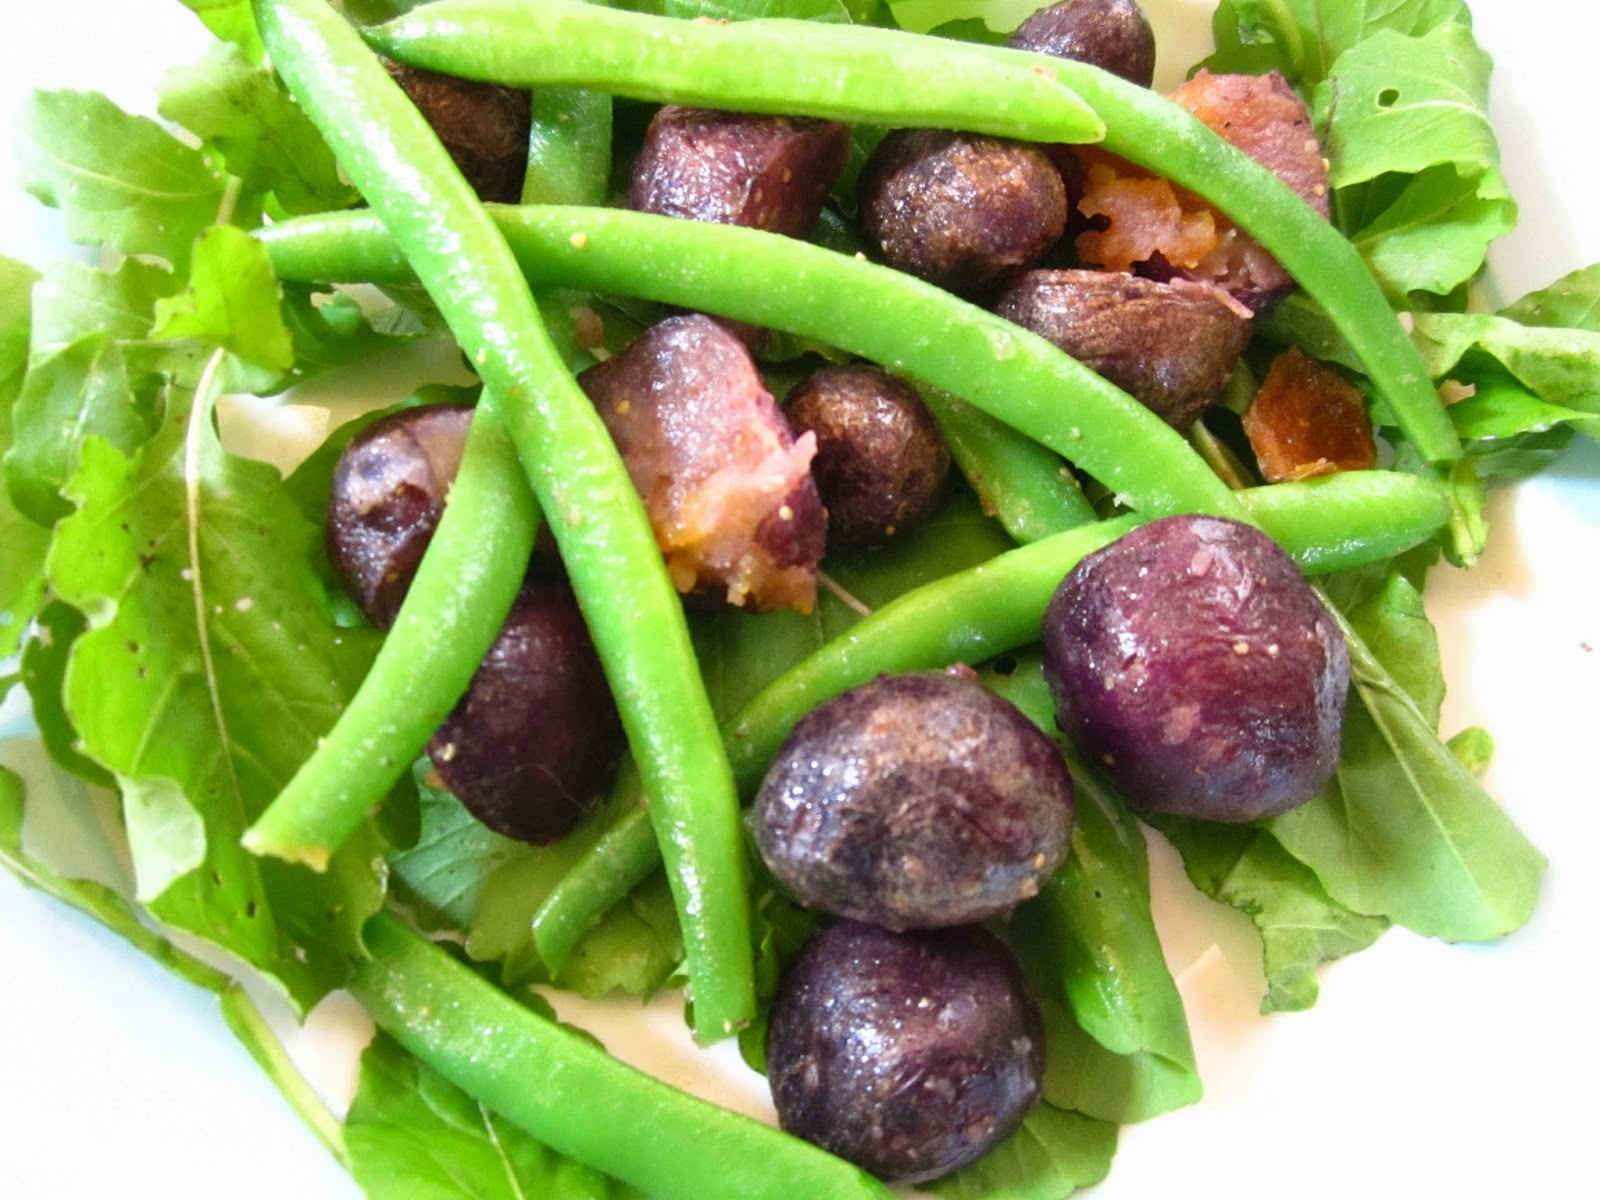 ... Salad #3: Green Beans and Blue Potatoes (with lemon anchovy dressing